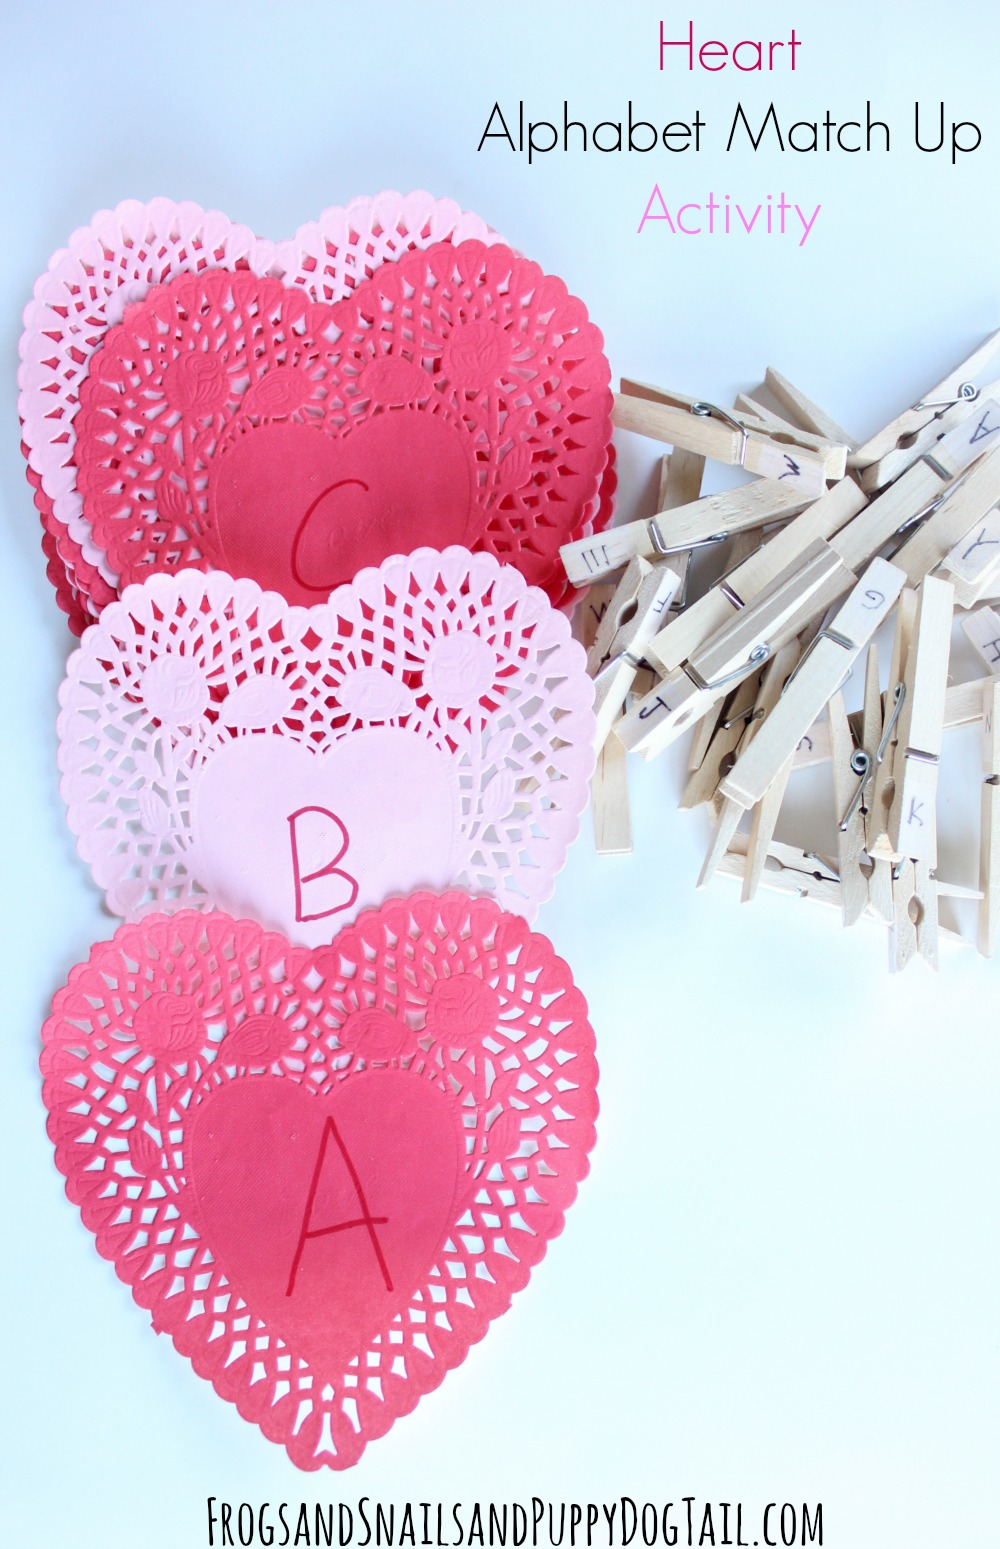 Heart Alphabet Match Up Activity